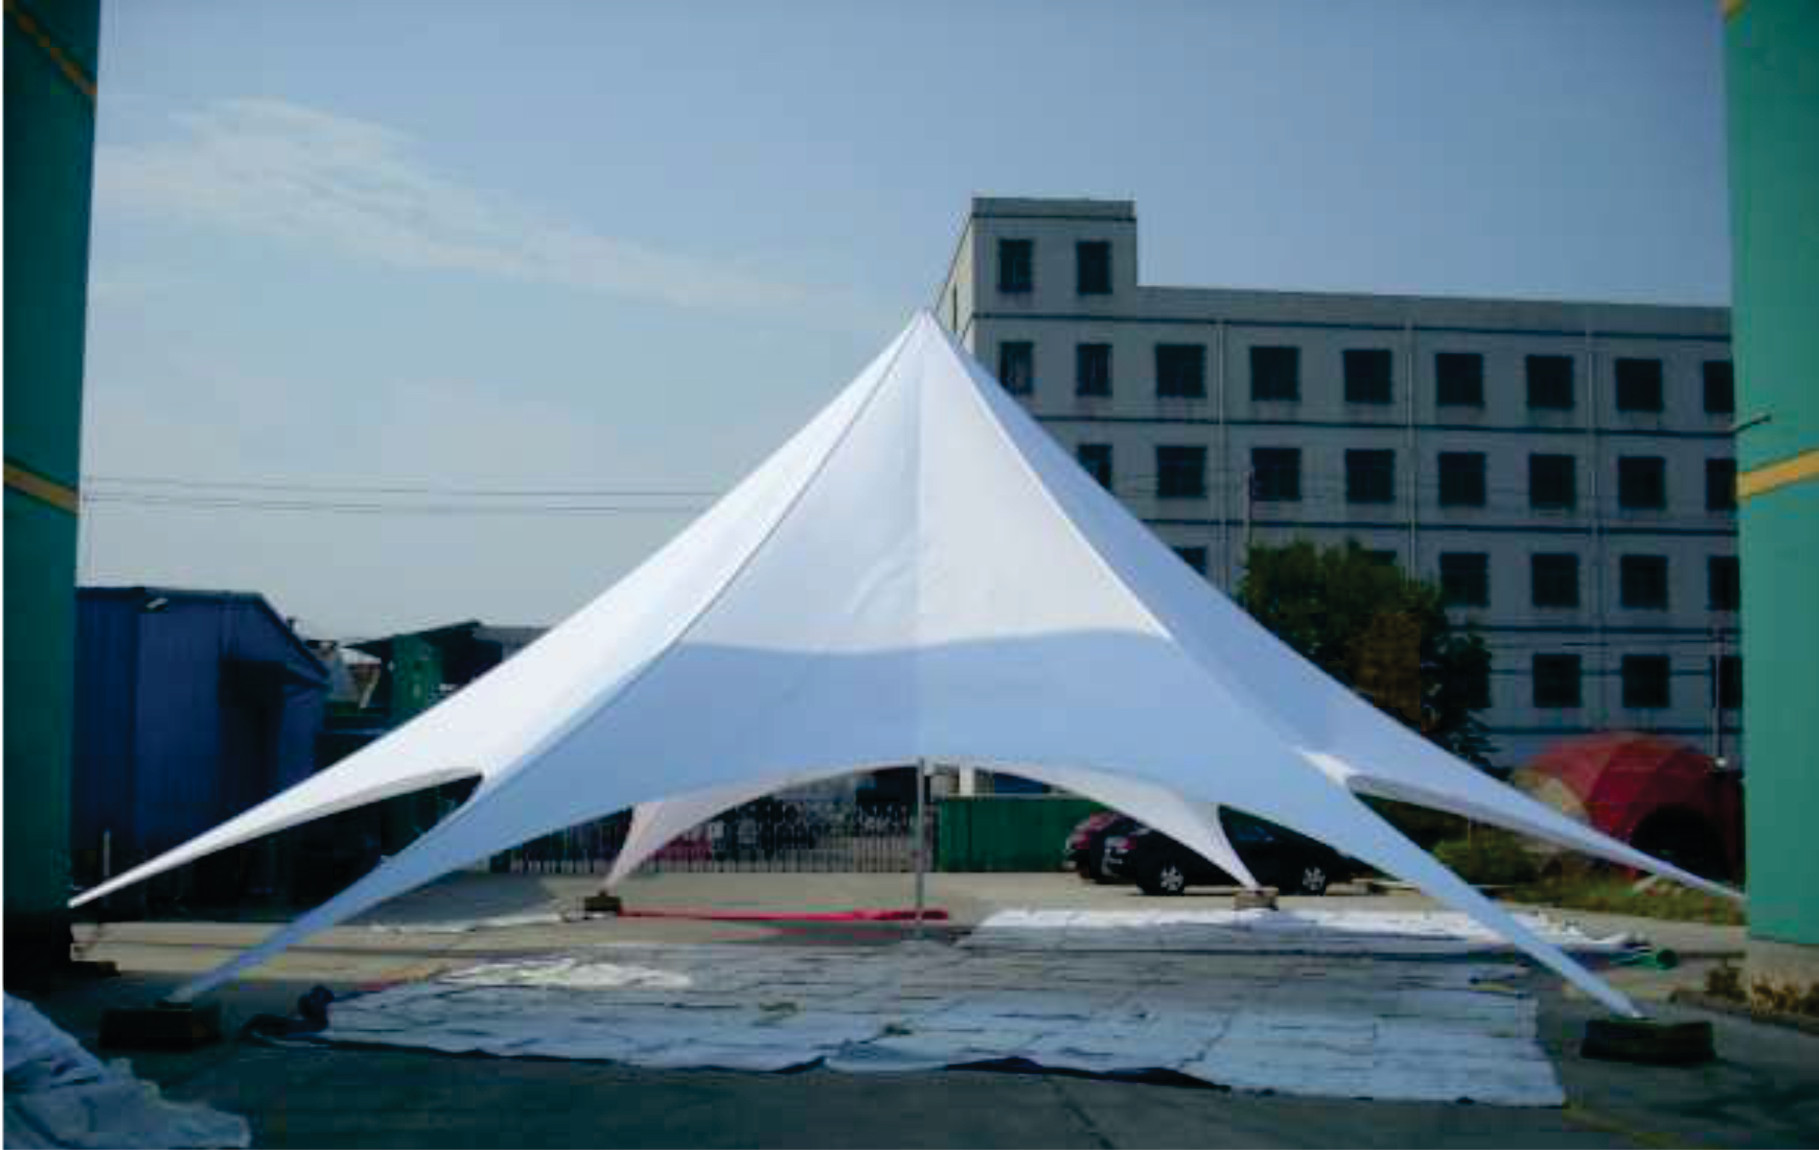 star tents in any color, with any graphics